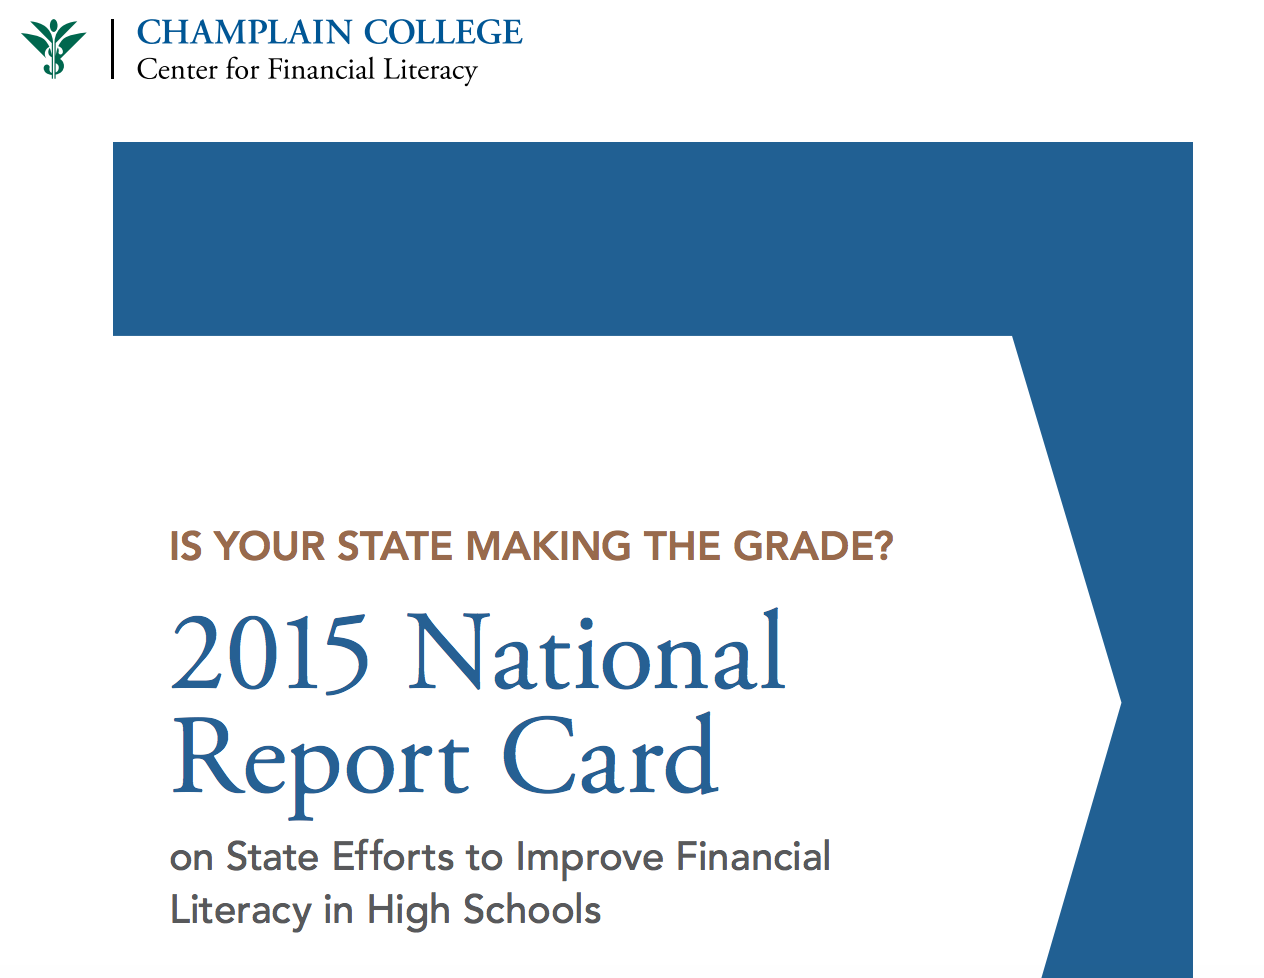 Making the Grade: 2015 National Report Card on State of Financial Literacy